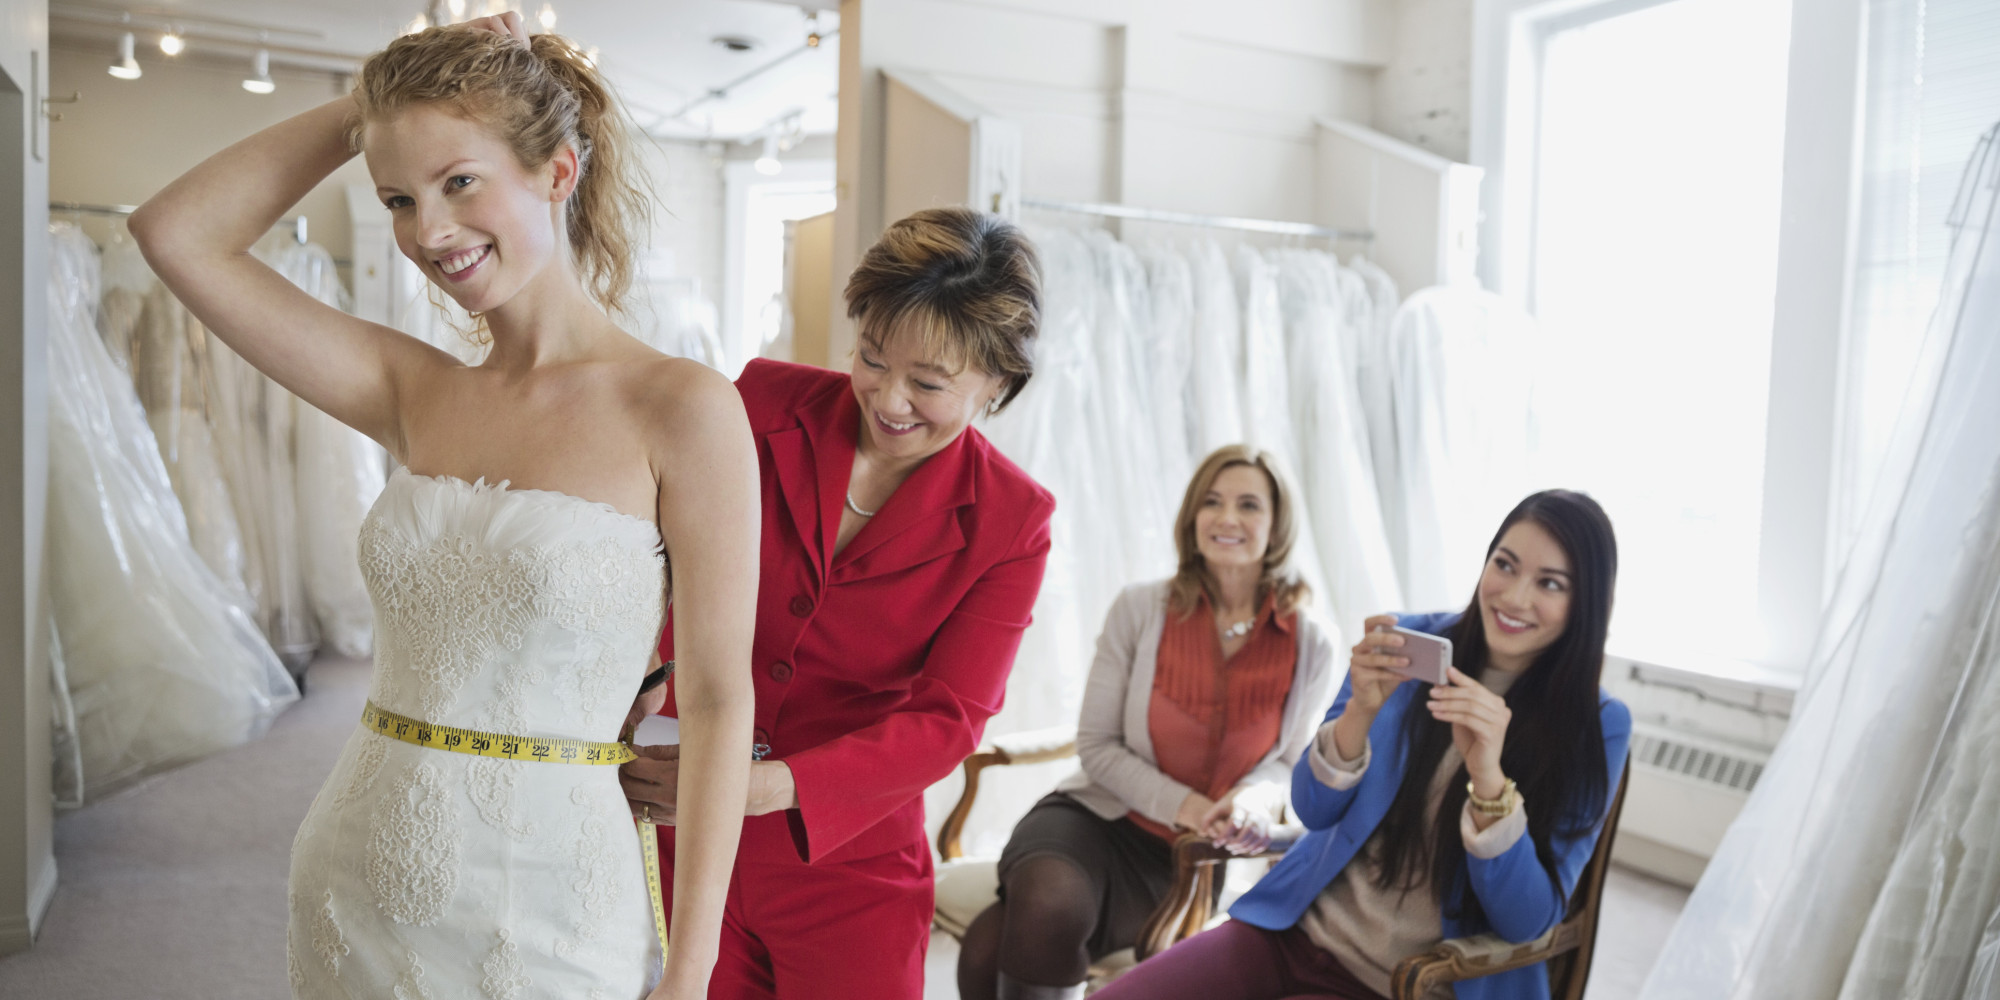 What Should You Keep In Mind While Getting Your Wedding Dress?